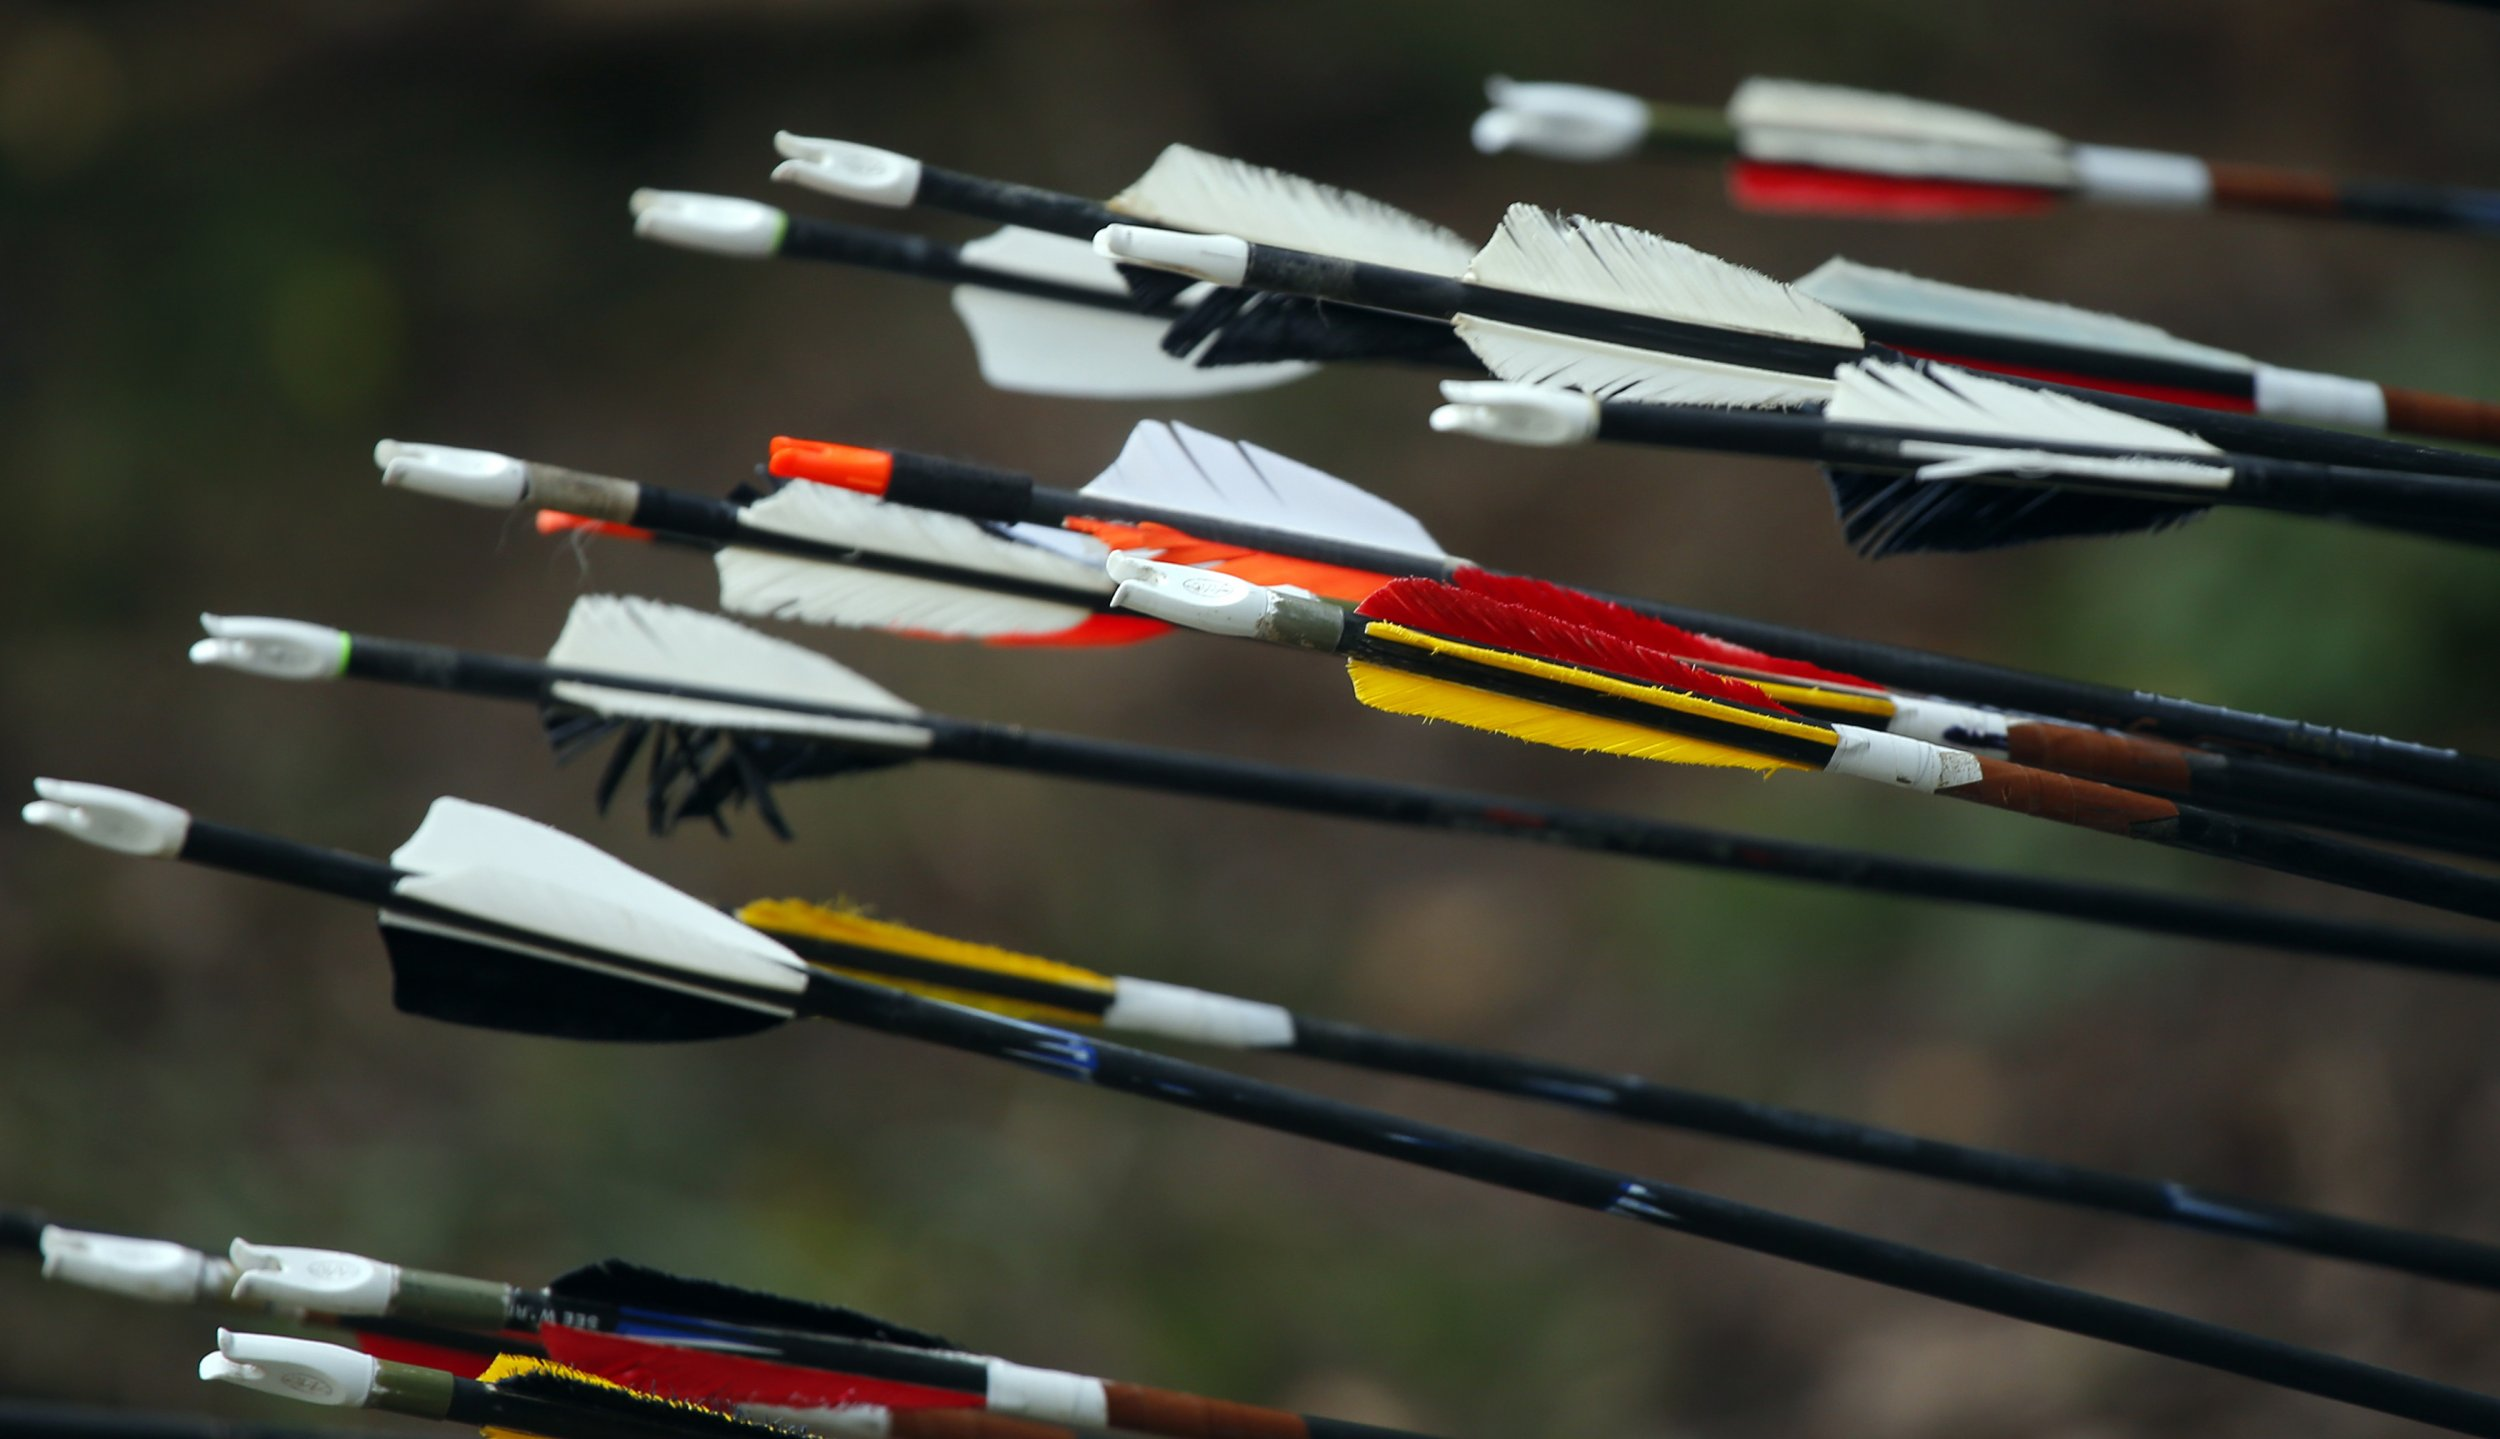 Patent Battle in LARPing Archery Lawsuit Ends but the War Rages On